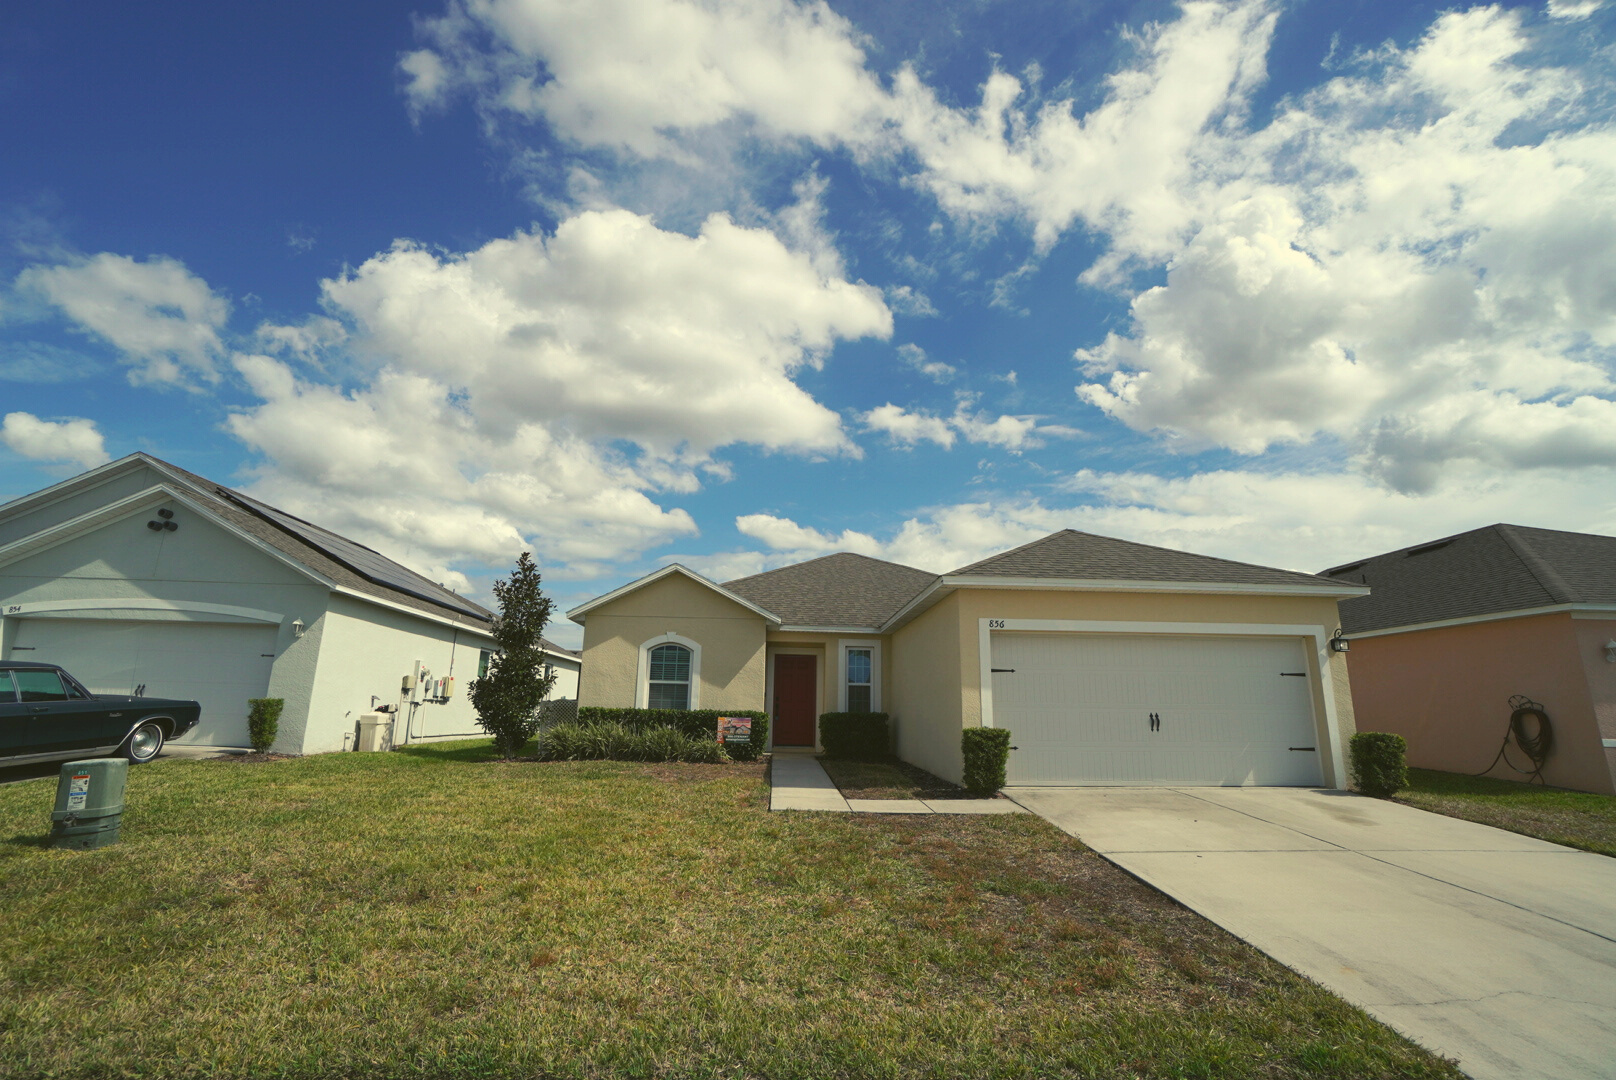 Photo of property: 856 Sheen Circle Haines City, FL 33844